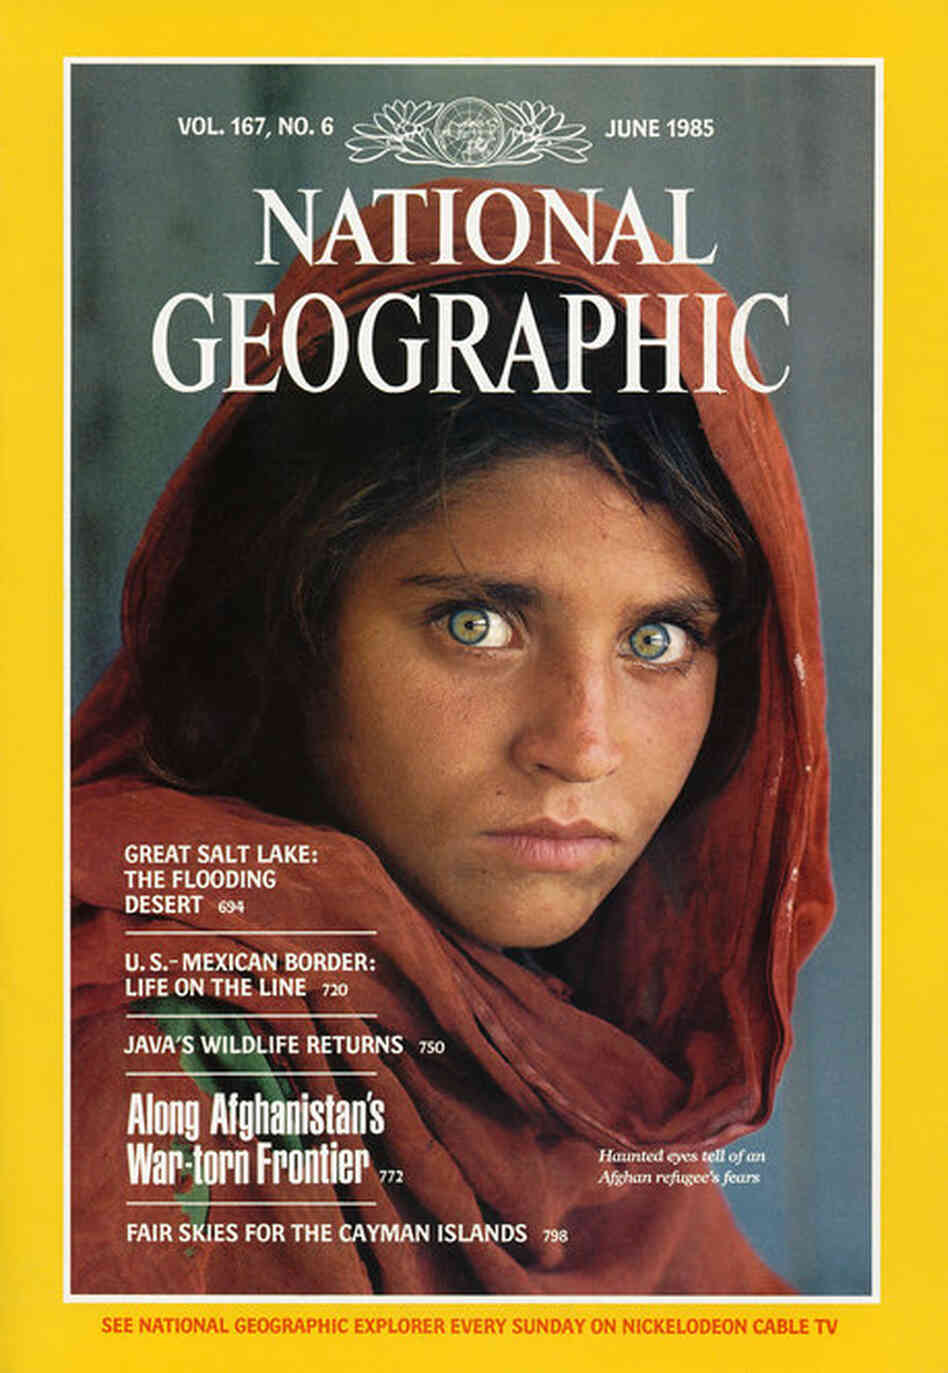 """Photographer Steve McCurry captured the iconic """"Afghan Girl"""" image using Kodak's Kodachrome film. This photo held the June 1985 cover spot of National Geographic, and was named to the American Society of Magazine Editors' """"40 Greatest Magazine Covers of the Last 40 Years"""" list in 2005. Kodak announced Monday that it would be discontinuing the production of Kodachrome film. (National Geog..."""